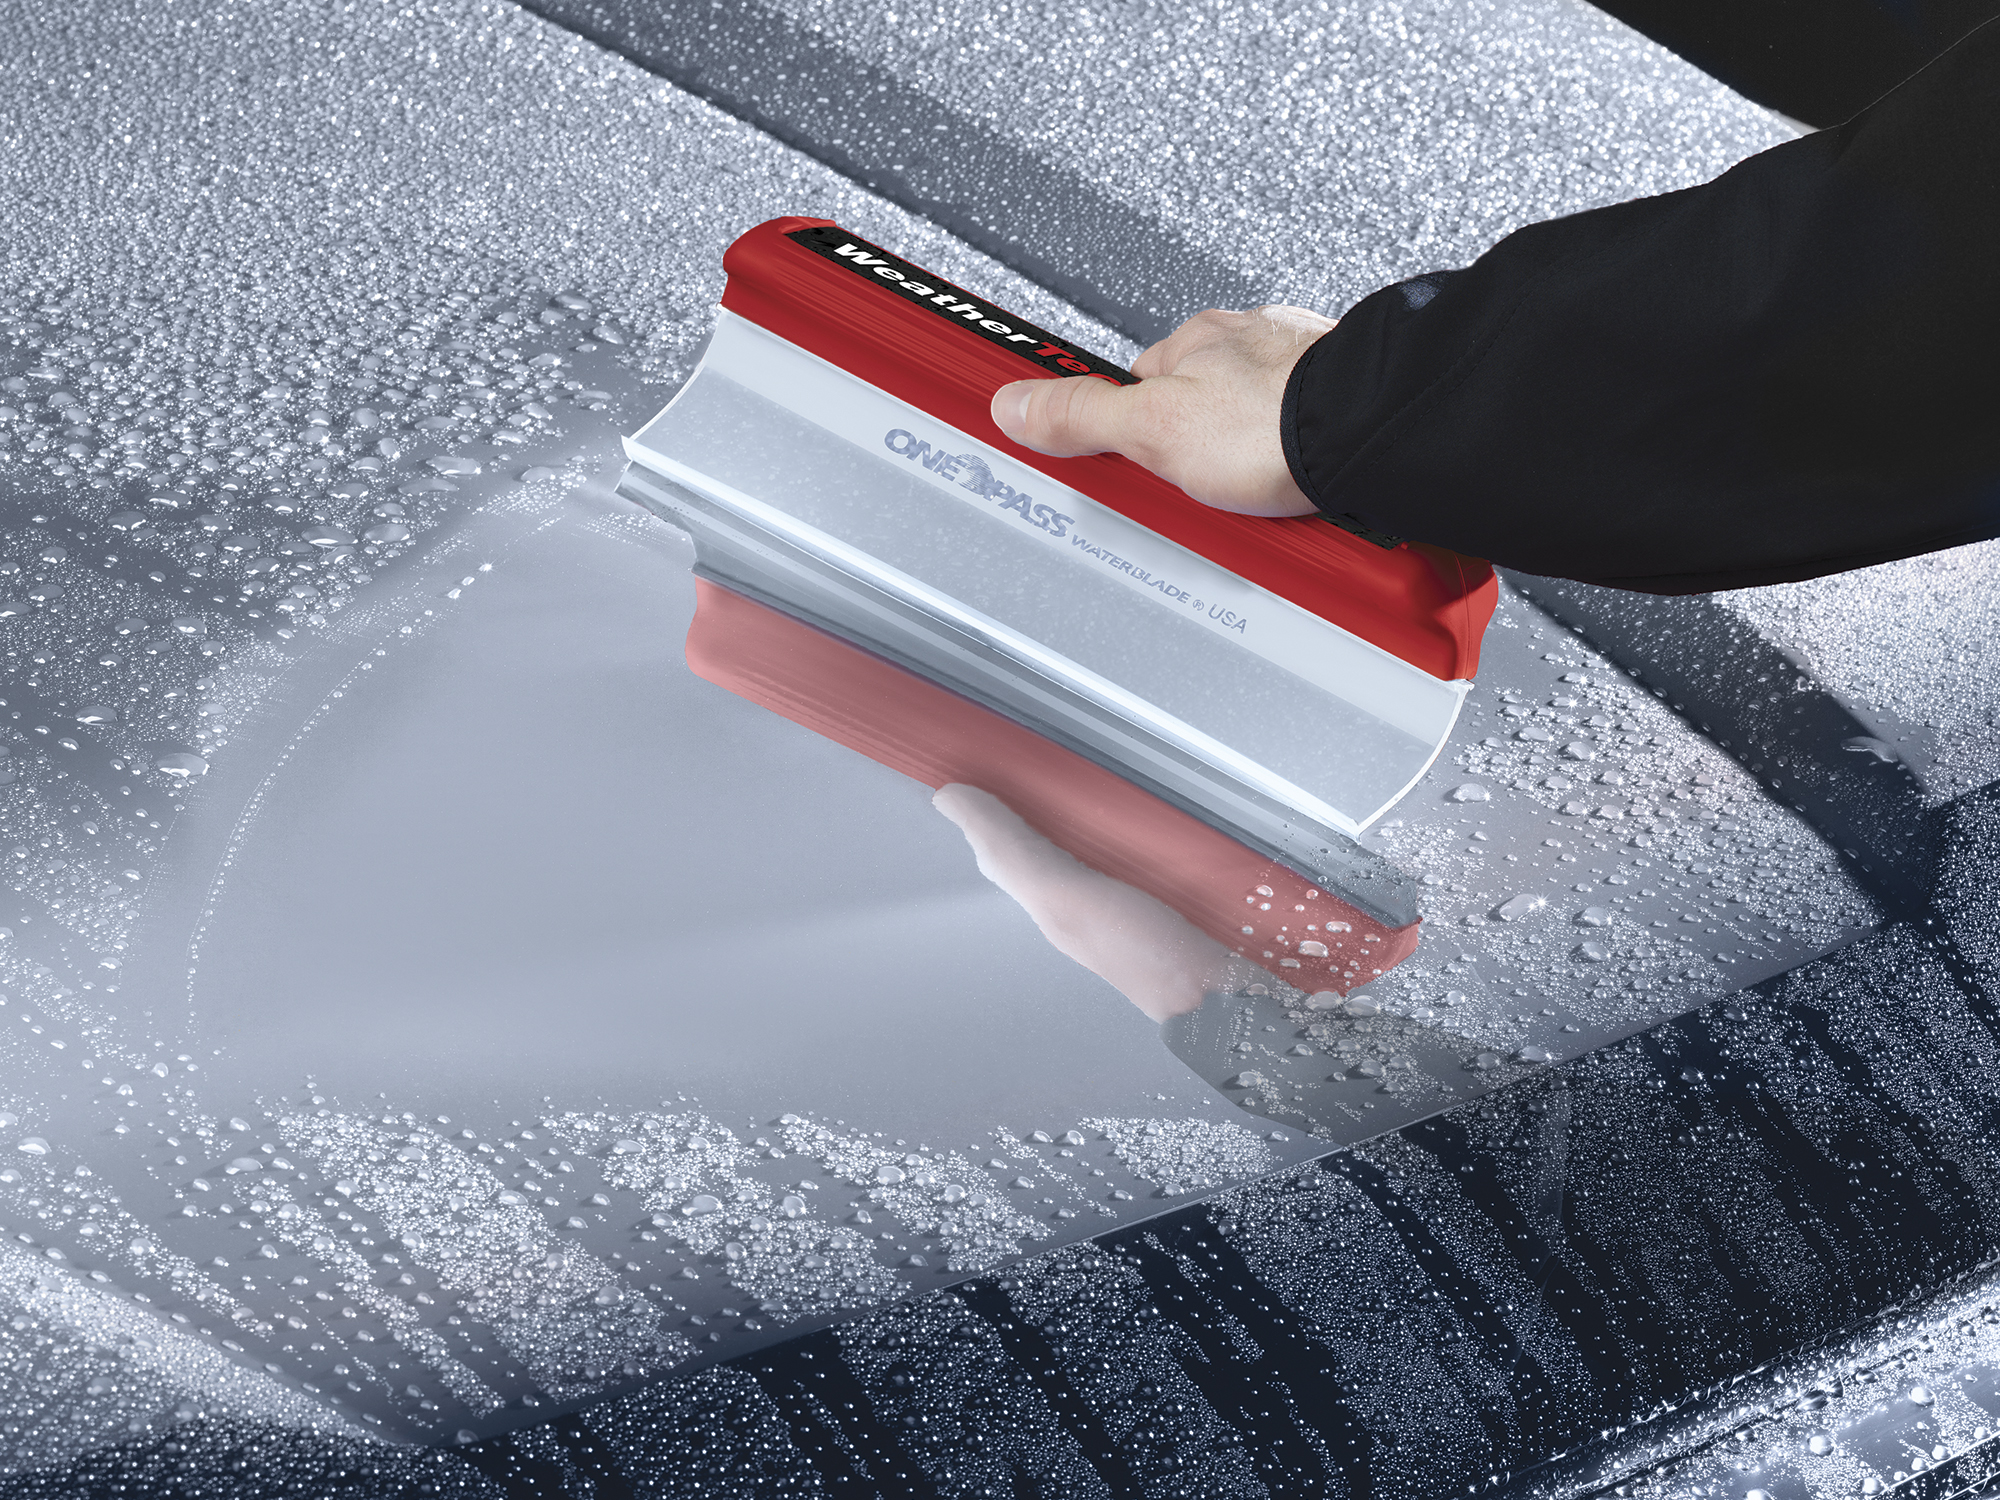 Weathertech mats civic - Squeegee Silicone Waterblade Squeegee For Quickly Drying Almost Any Surface